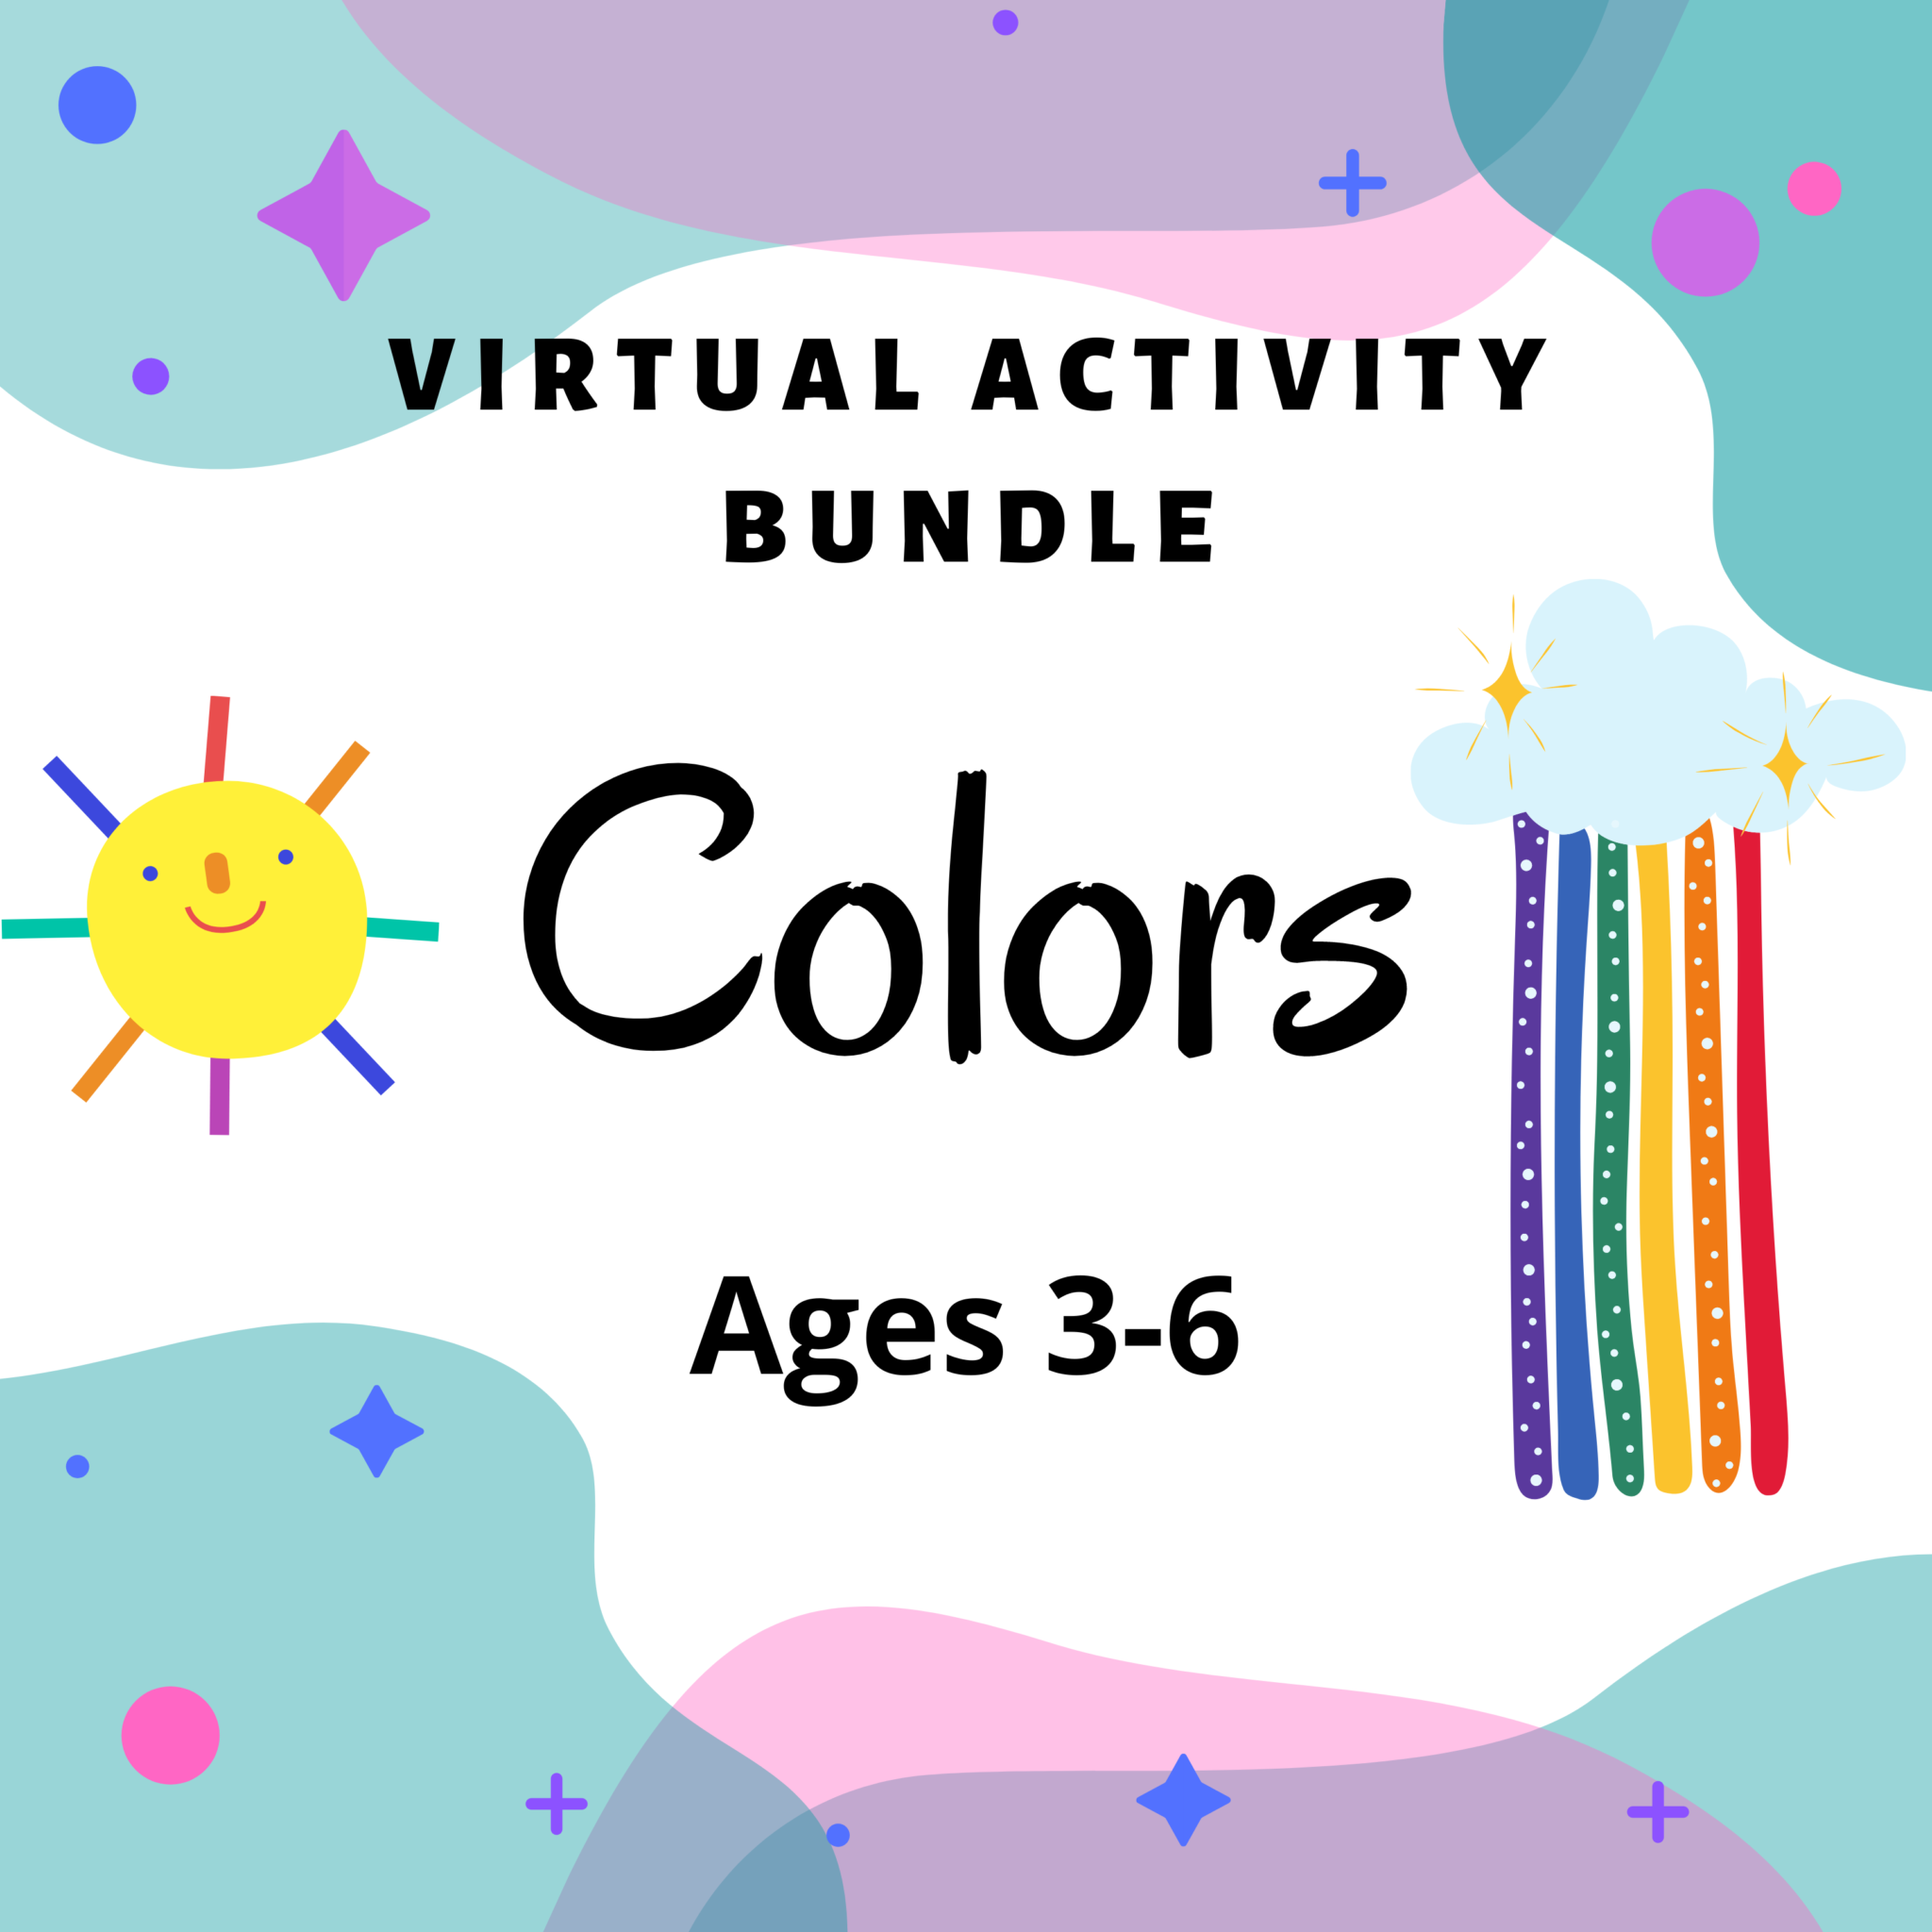 Virtual Activity Bundle: Colors